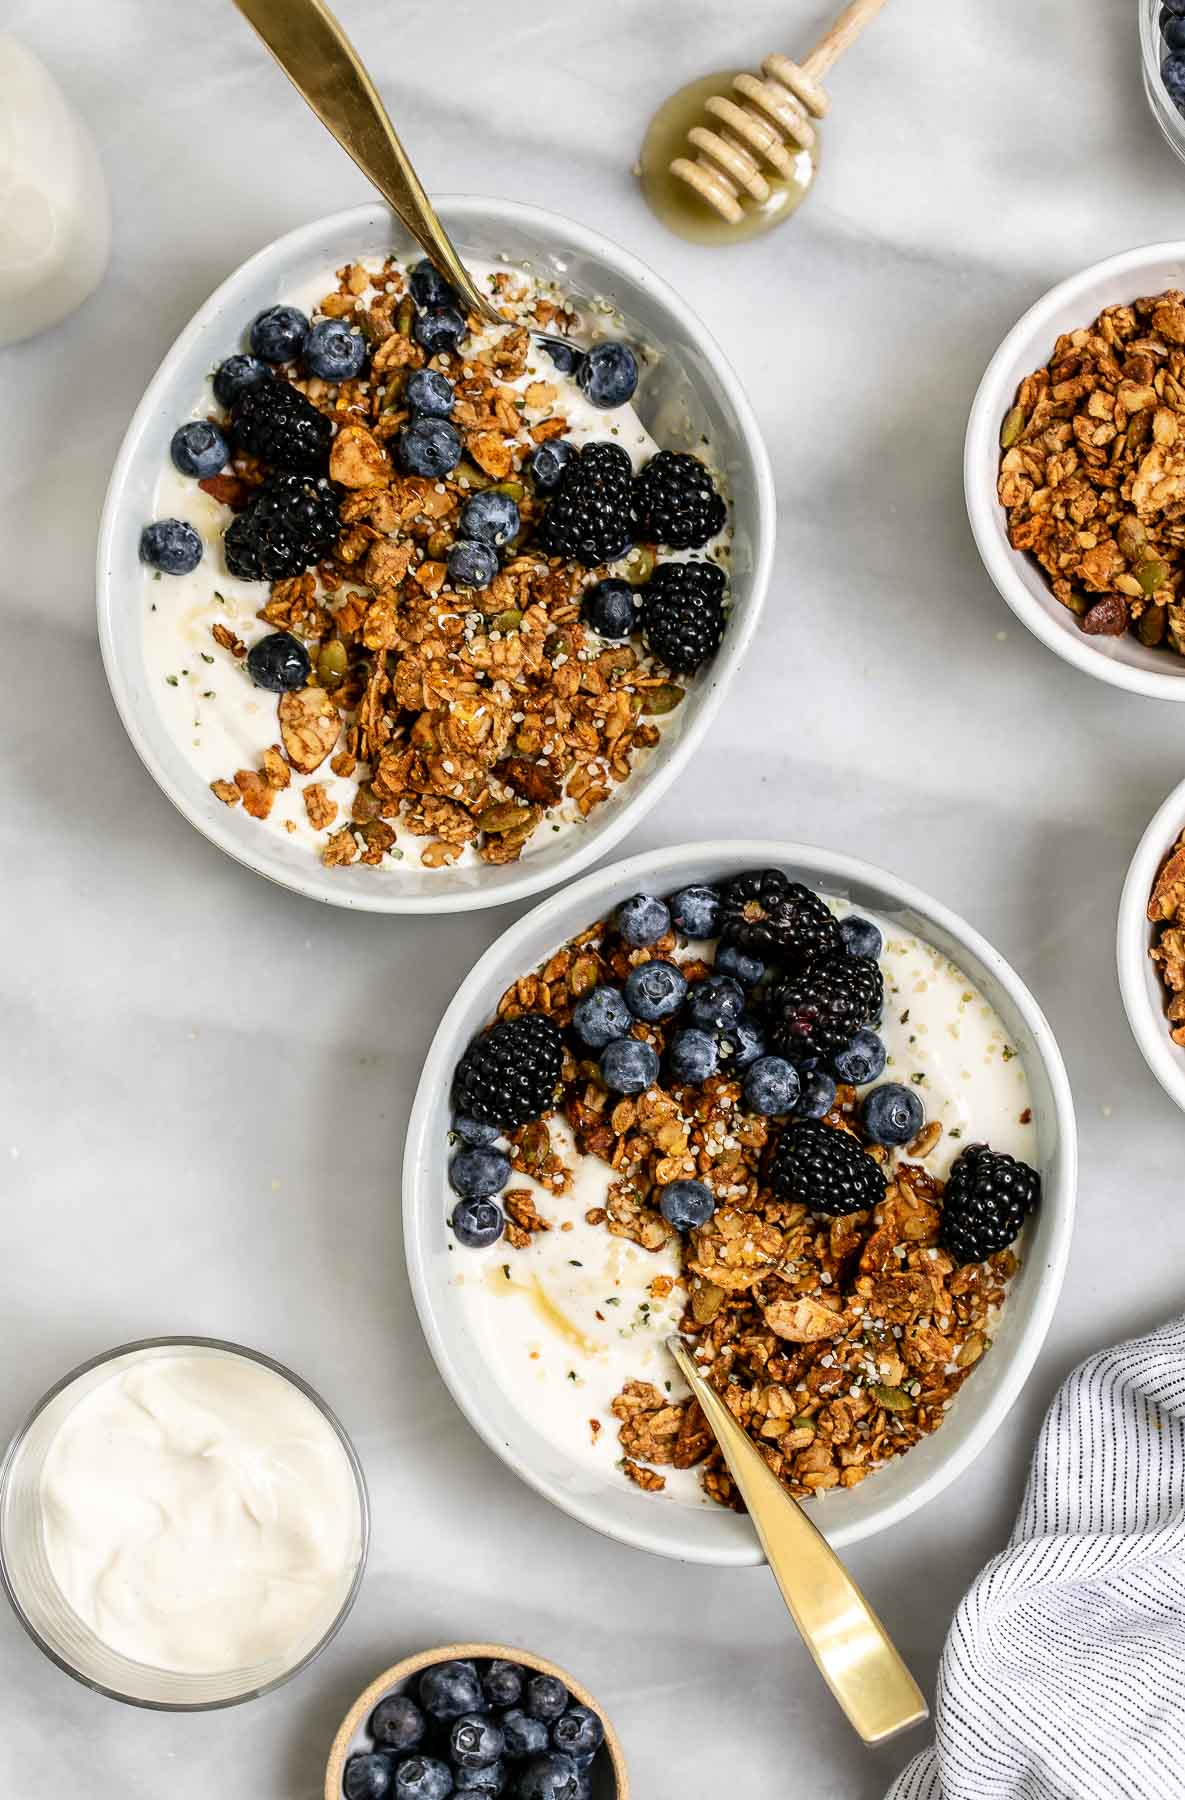 Two bowls with vegan granola and yogurt with blueberries on top.